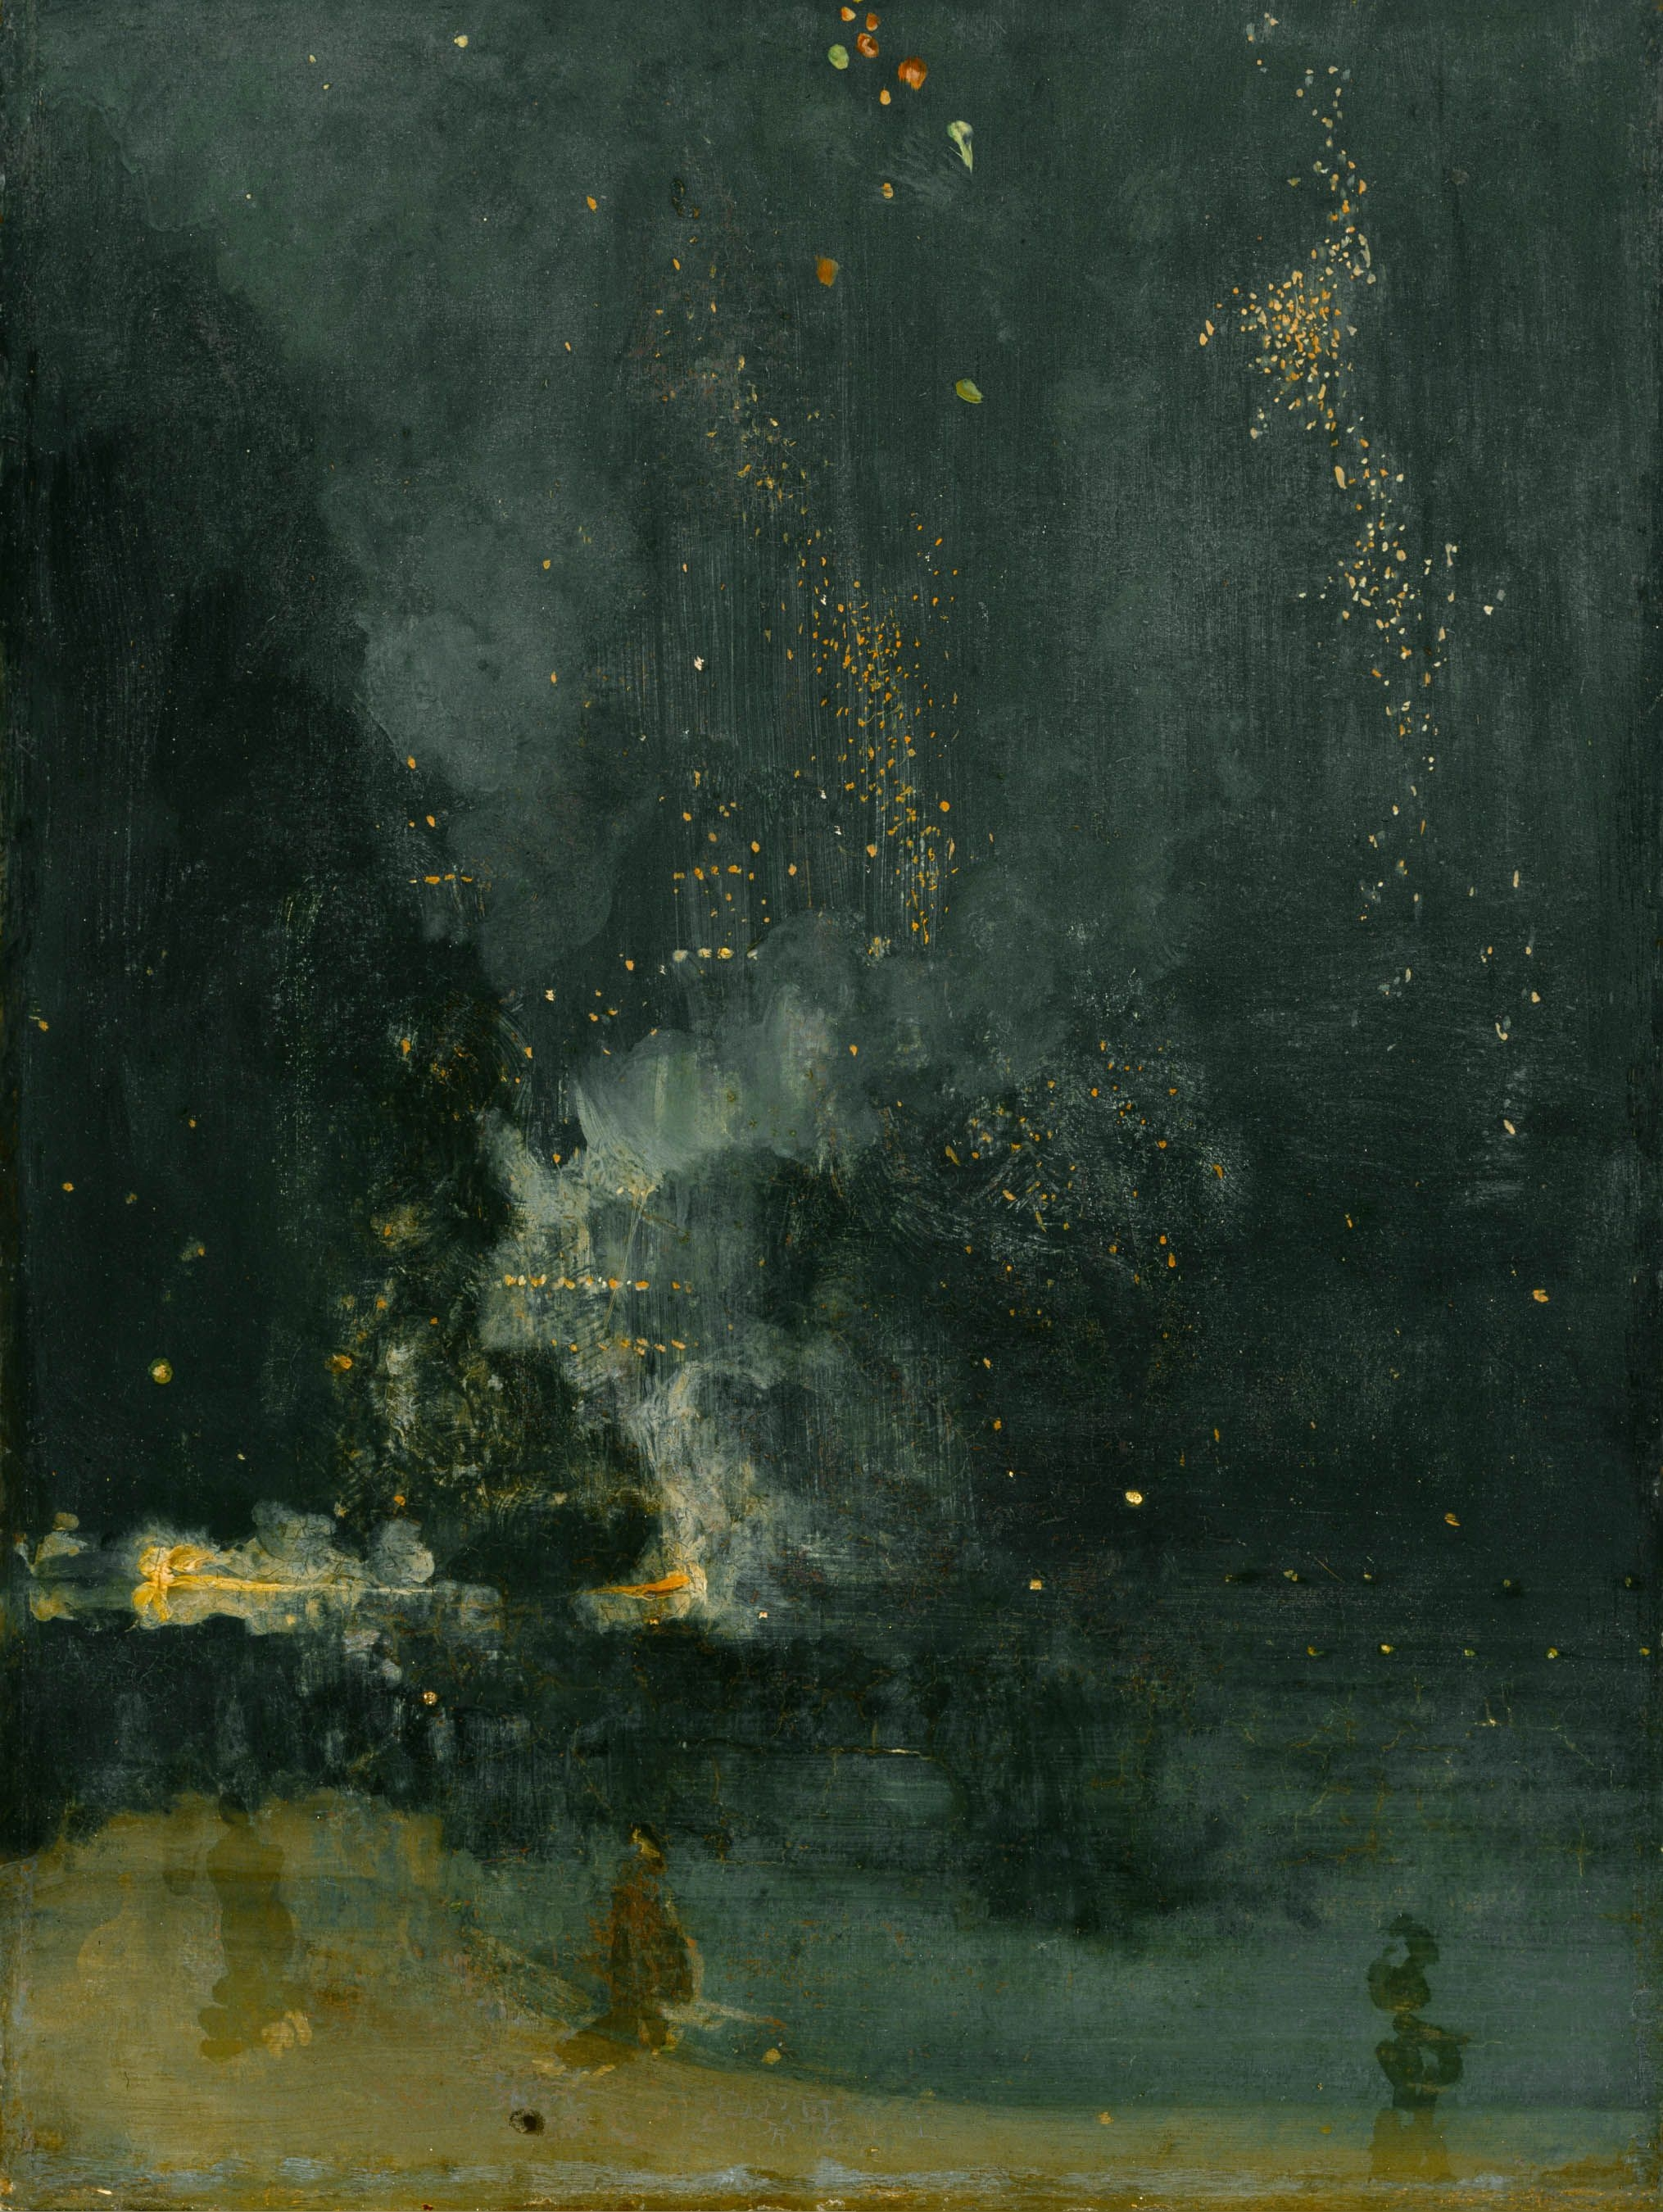 http://upload.wikimedia.org/wikipedia/commons/b/b1/Whistler-Nocturne_in_black_and_gold.jpg